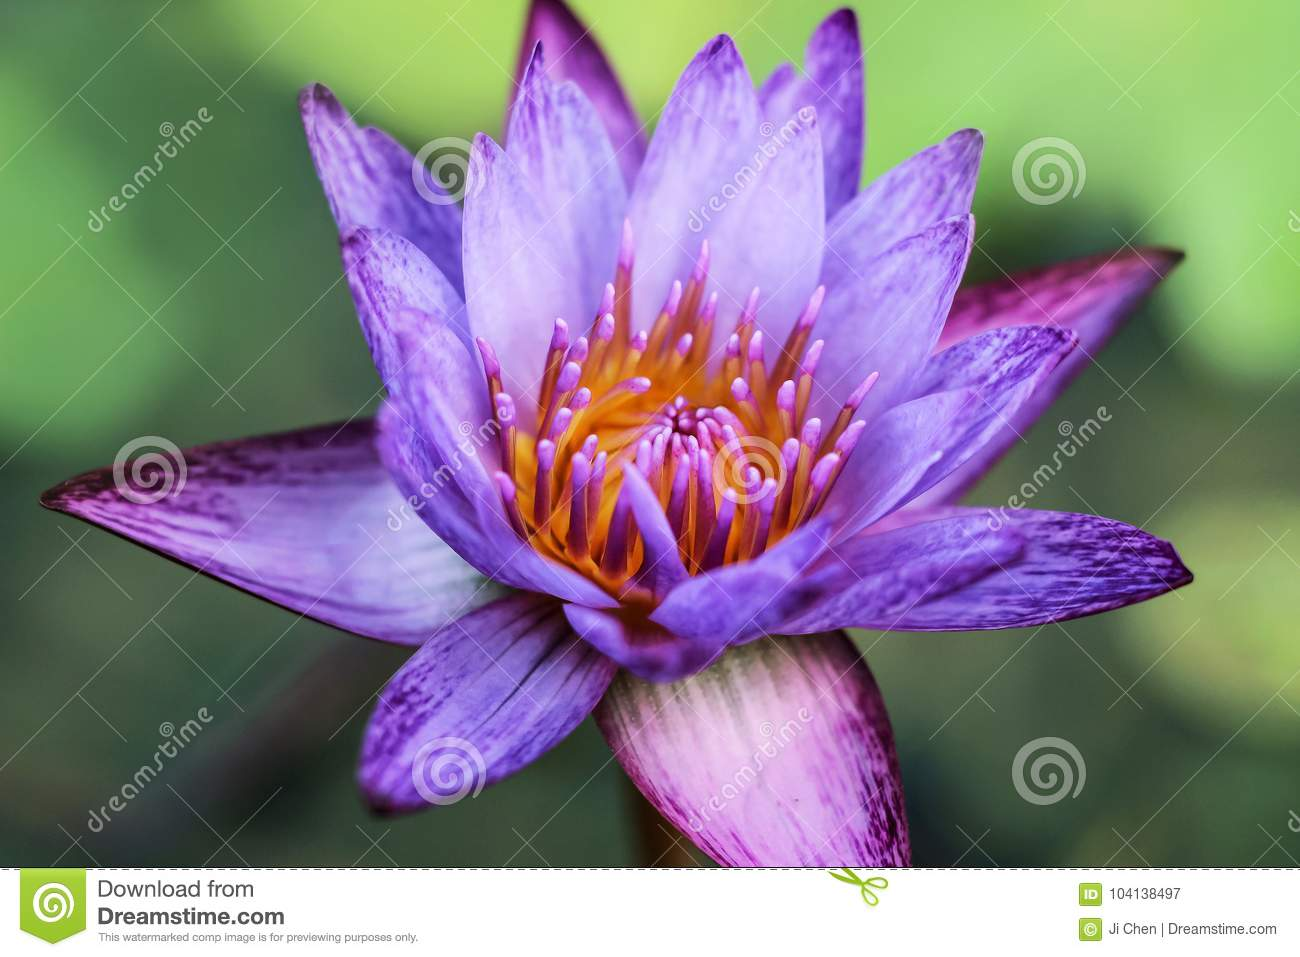 Close up of purple water lily flowers stock image image of growth close up of purple water lily flowers izmirmasajfo